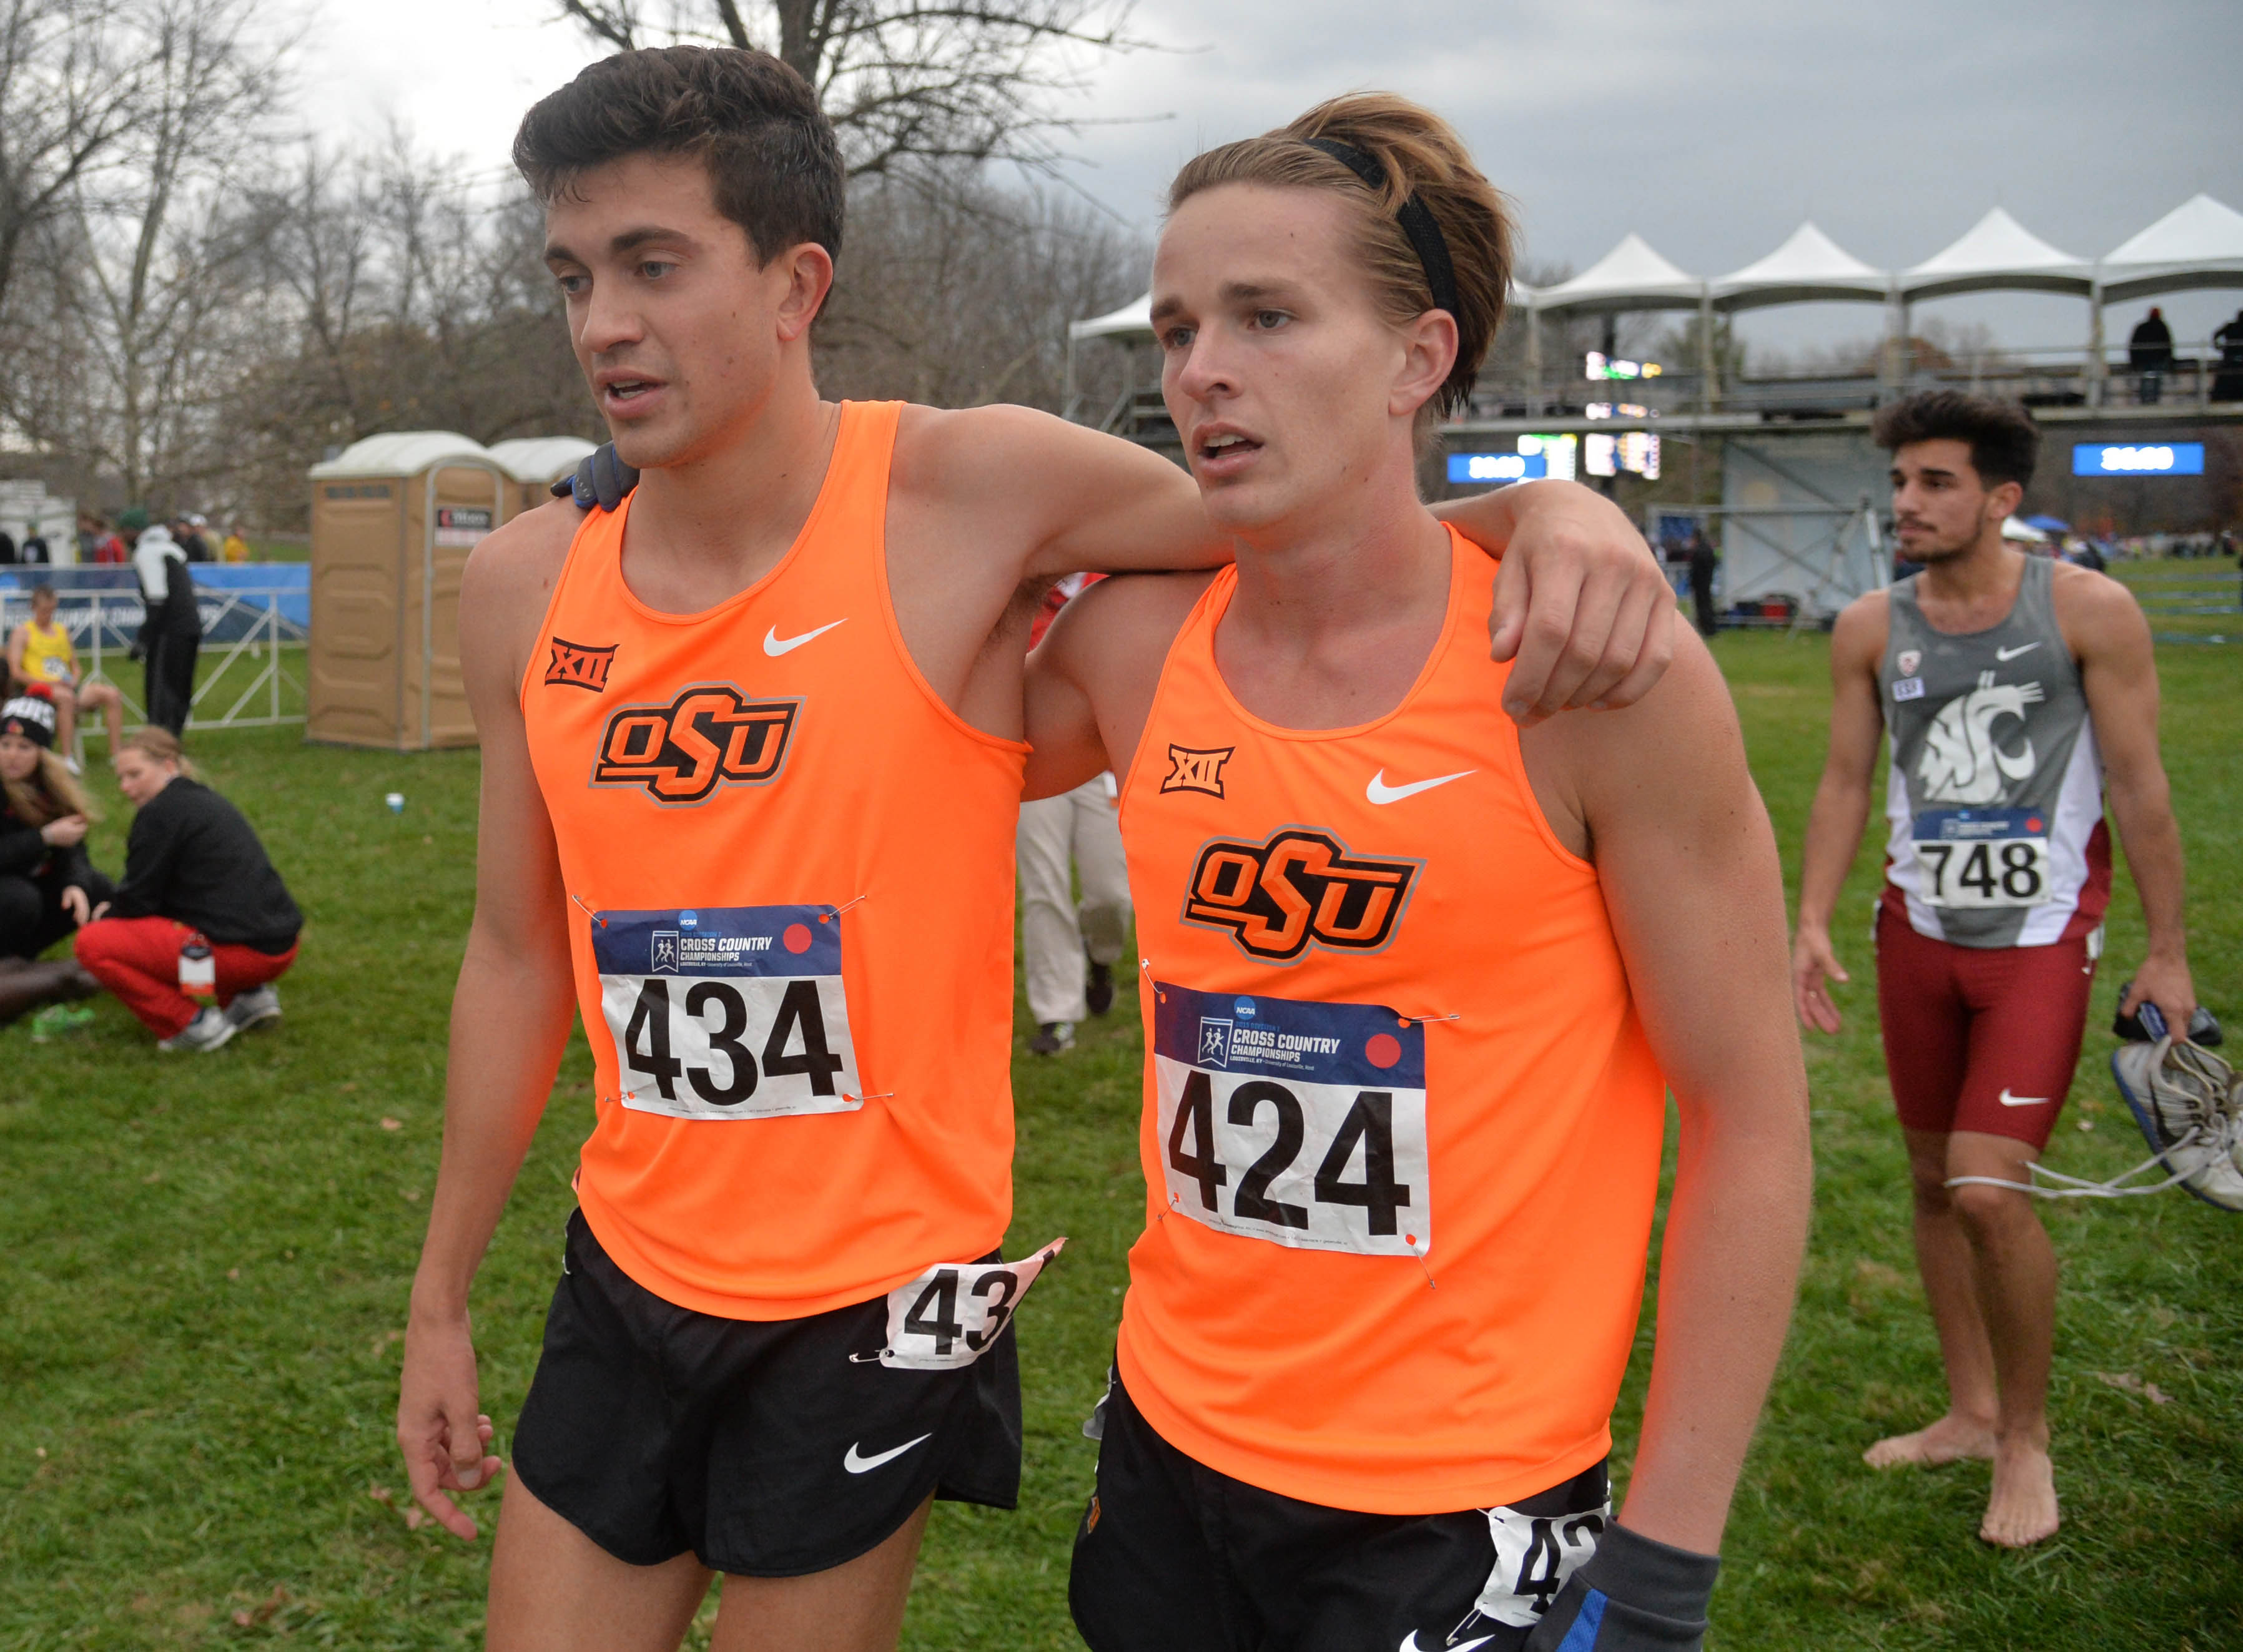 8952498-cross-country-ncaa-championships